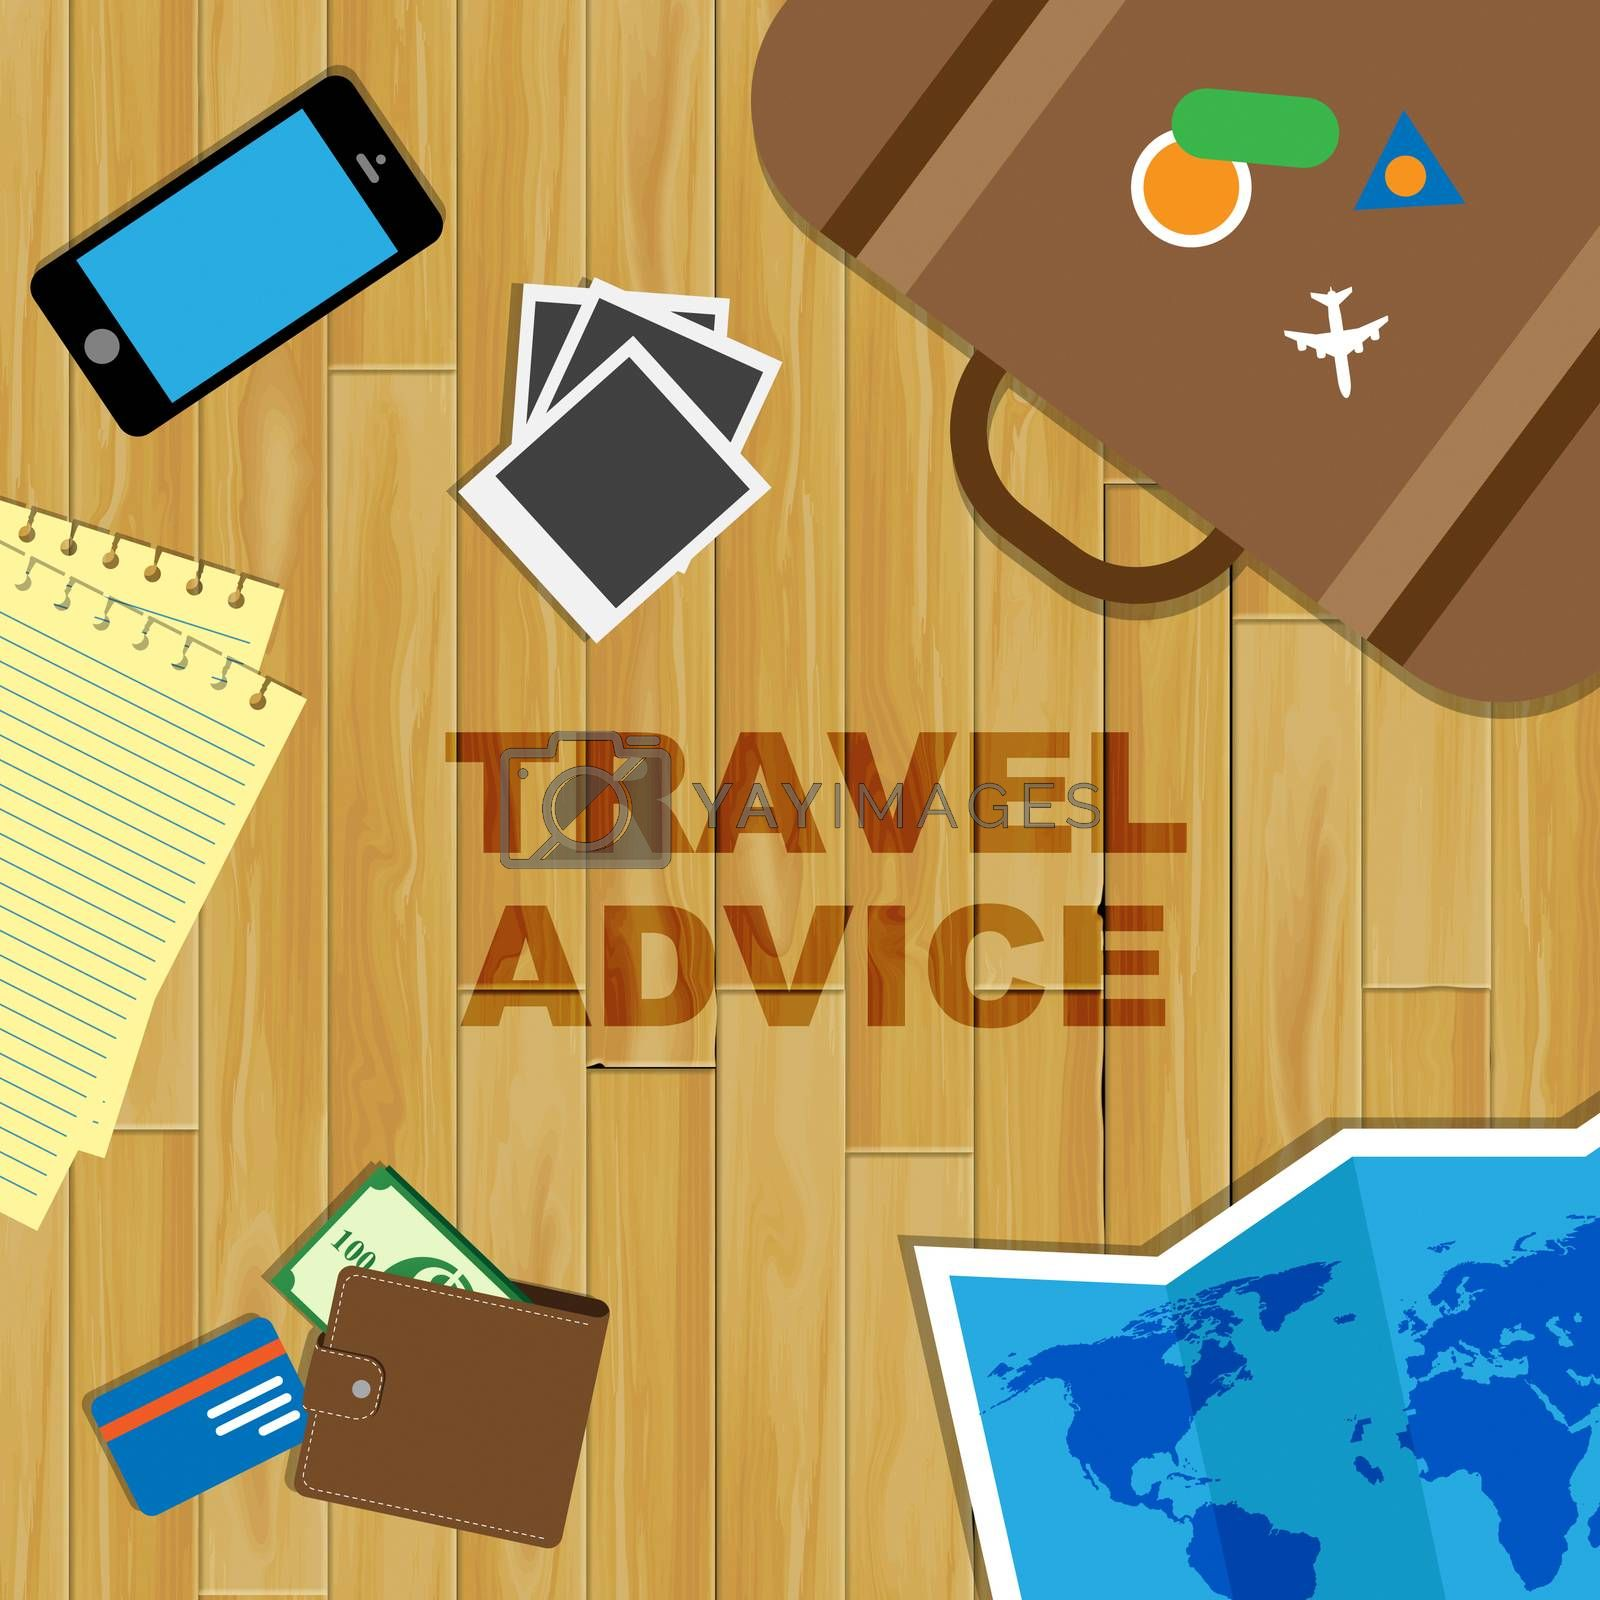 Travel Advice Representing Trips And Travels Guidance